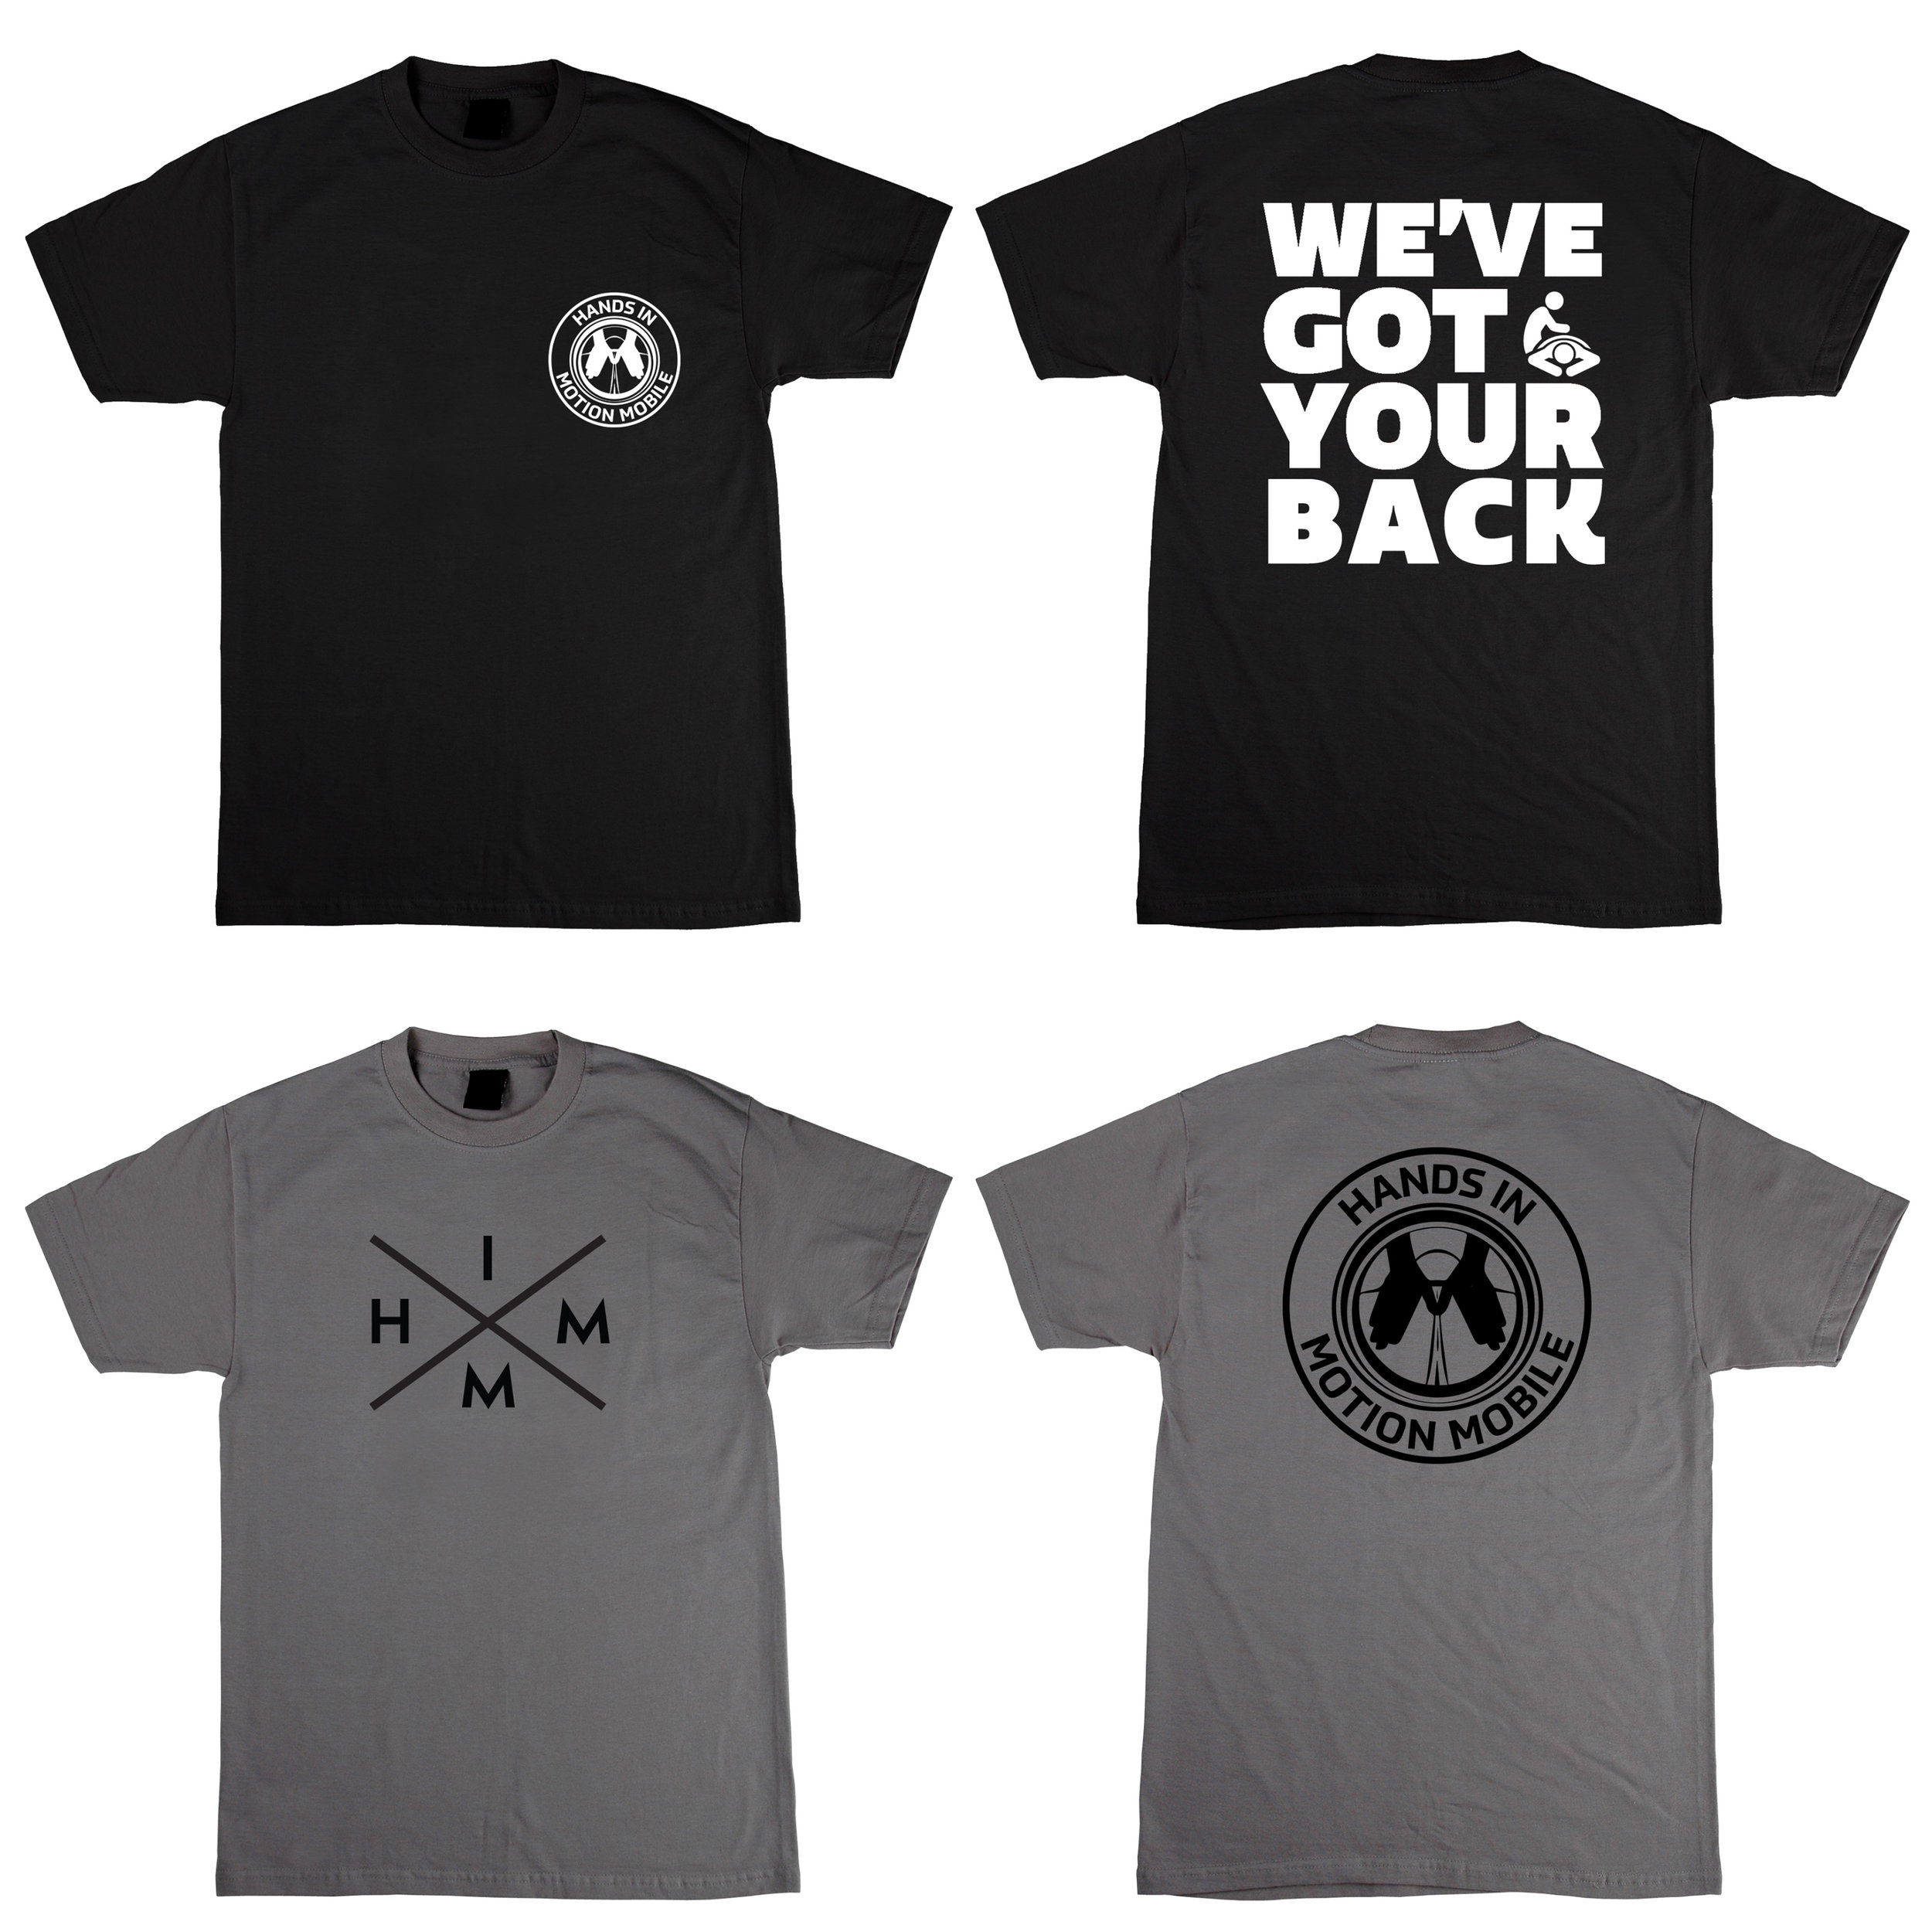 T-shirts Designs for  Hands In Motion  Designed by  S. Robinson